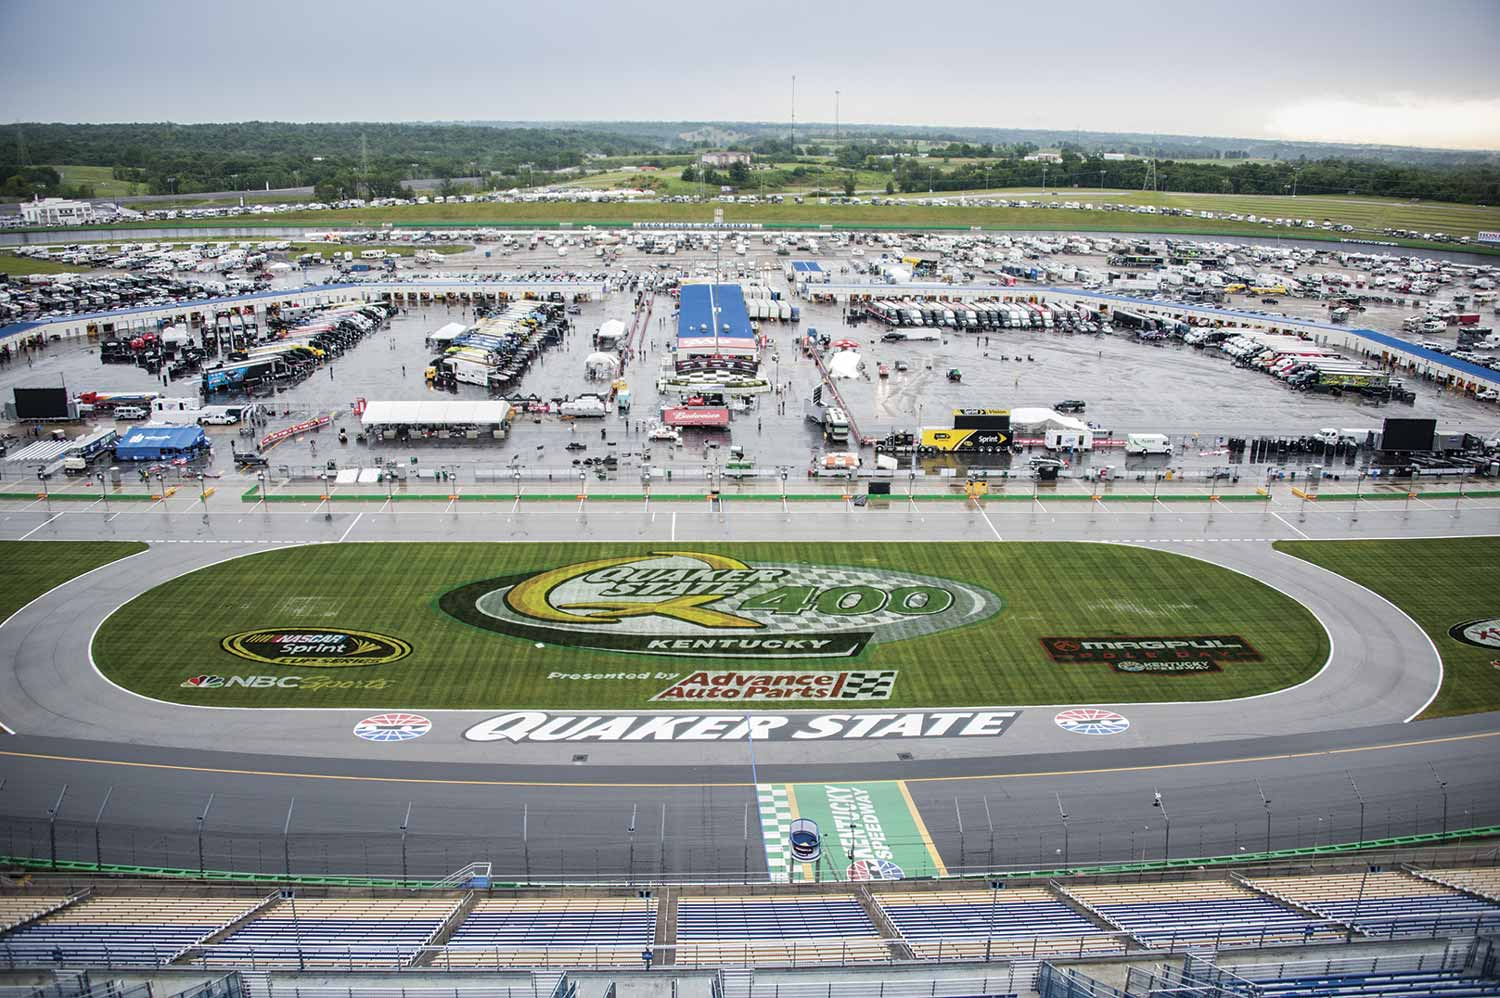 The large Kentucky Speedway venue hosts not only NASCAR and Indy races, but numerous smaller events throughout the year that keep the sheriff's office personnel busy. (Photo by Jim Robertson)